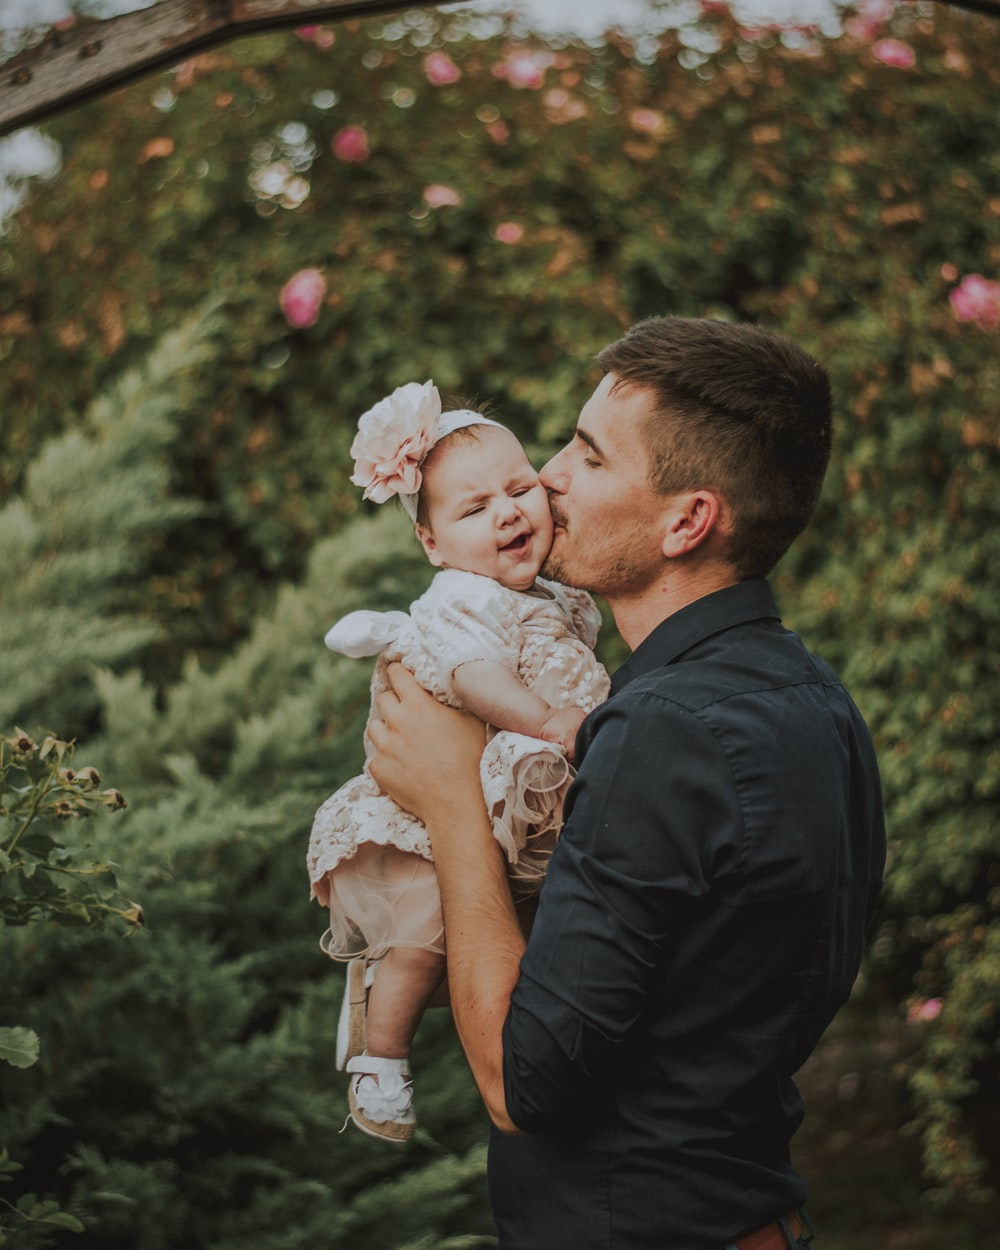 men holding a baby near plants during daytime